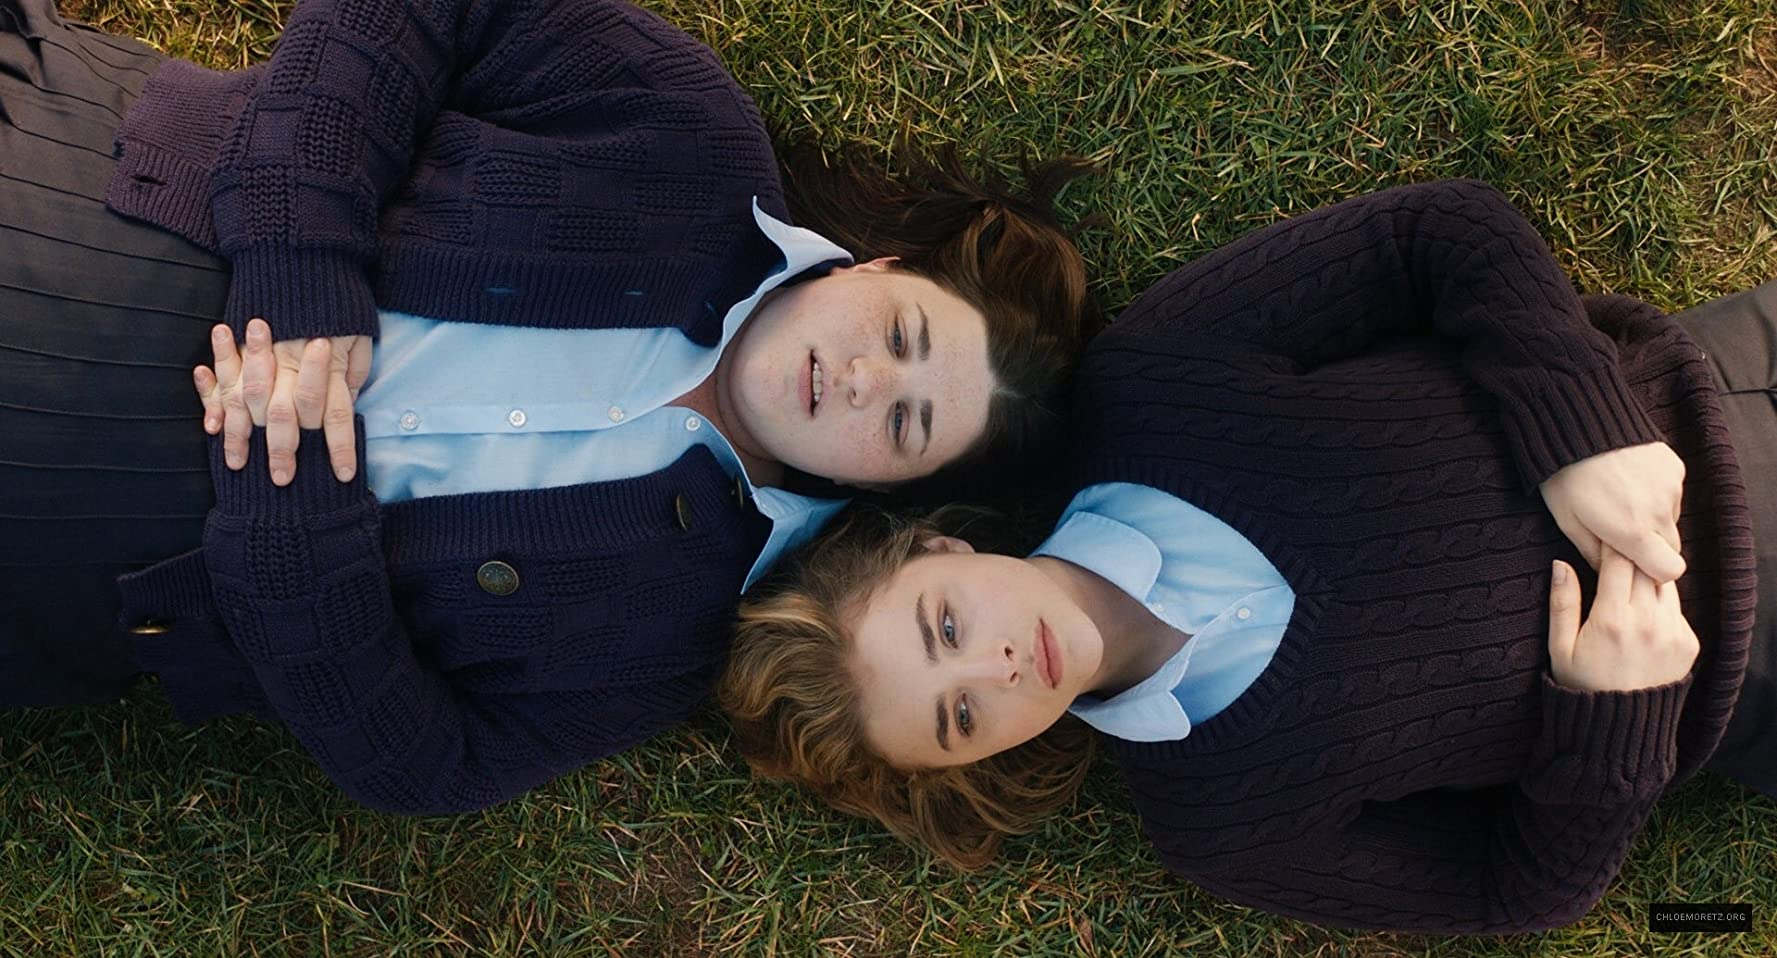 Chloë Grace Moretz and Melanie Ehrlich in The Miseducation of Cameron Post (2018)